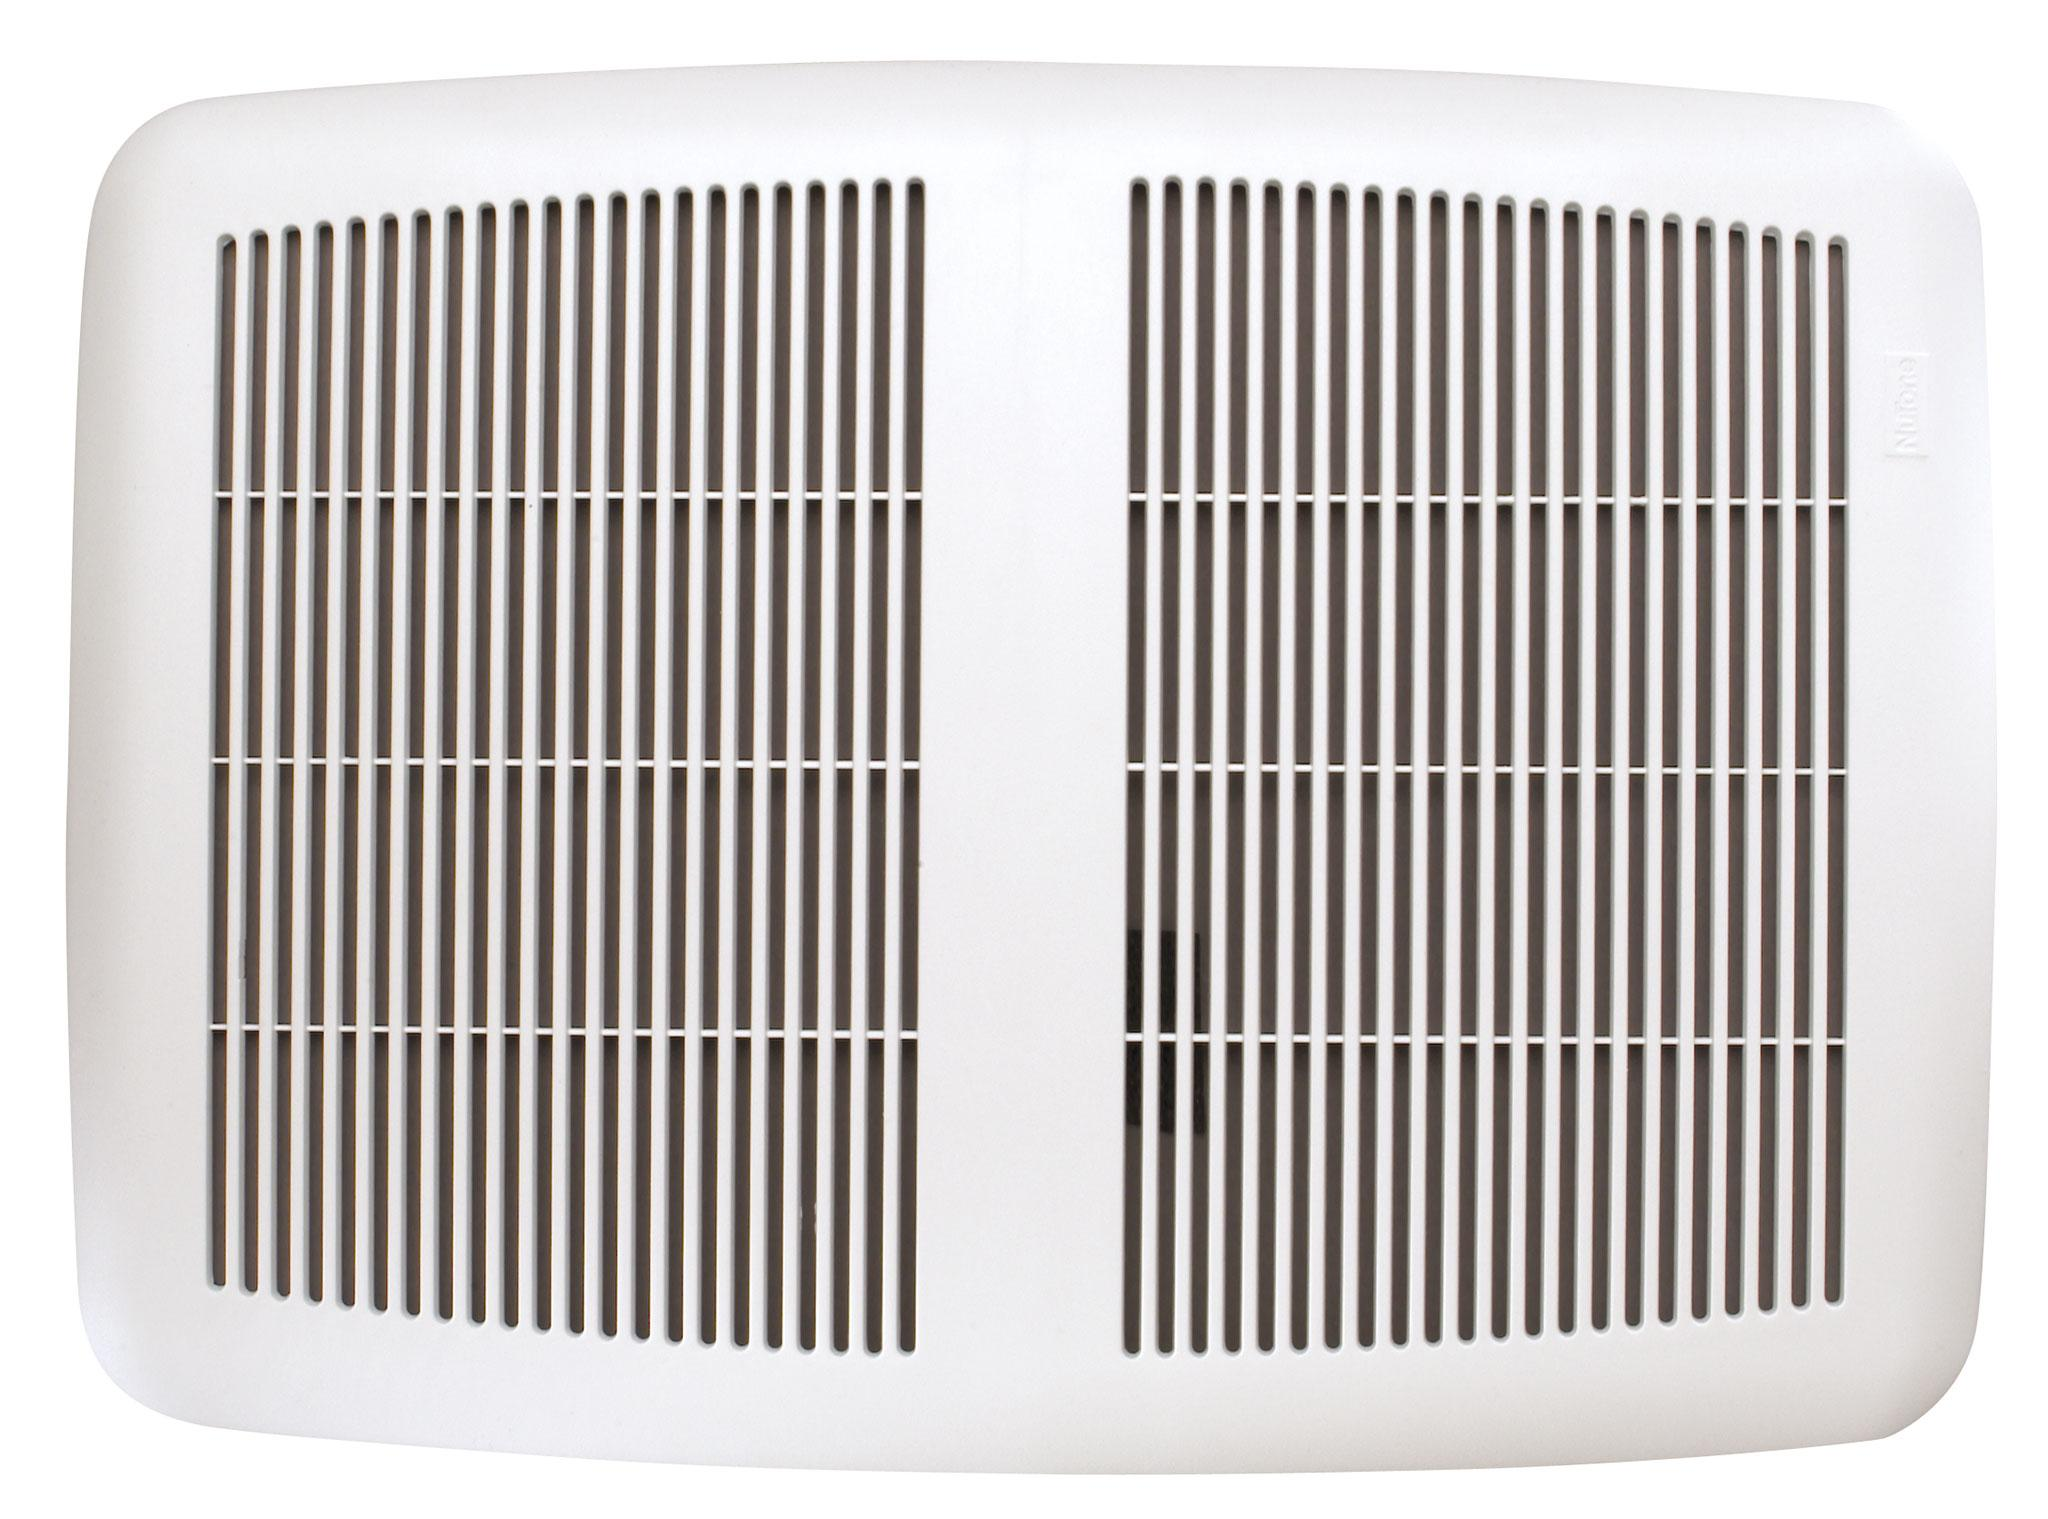 Nutone scovill bathroom fan - Nutone Qt300 Wall Ceiling Mount Fan With Vertical Horizontal Discharge 300 Cfm